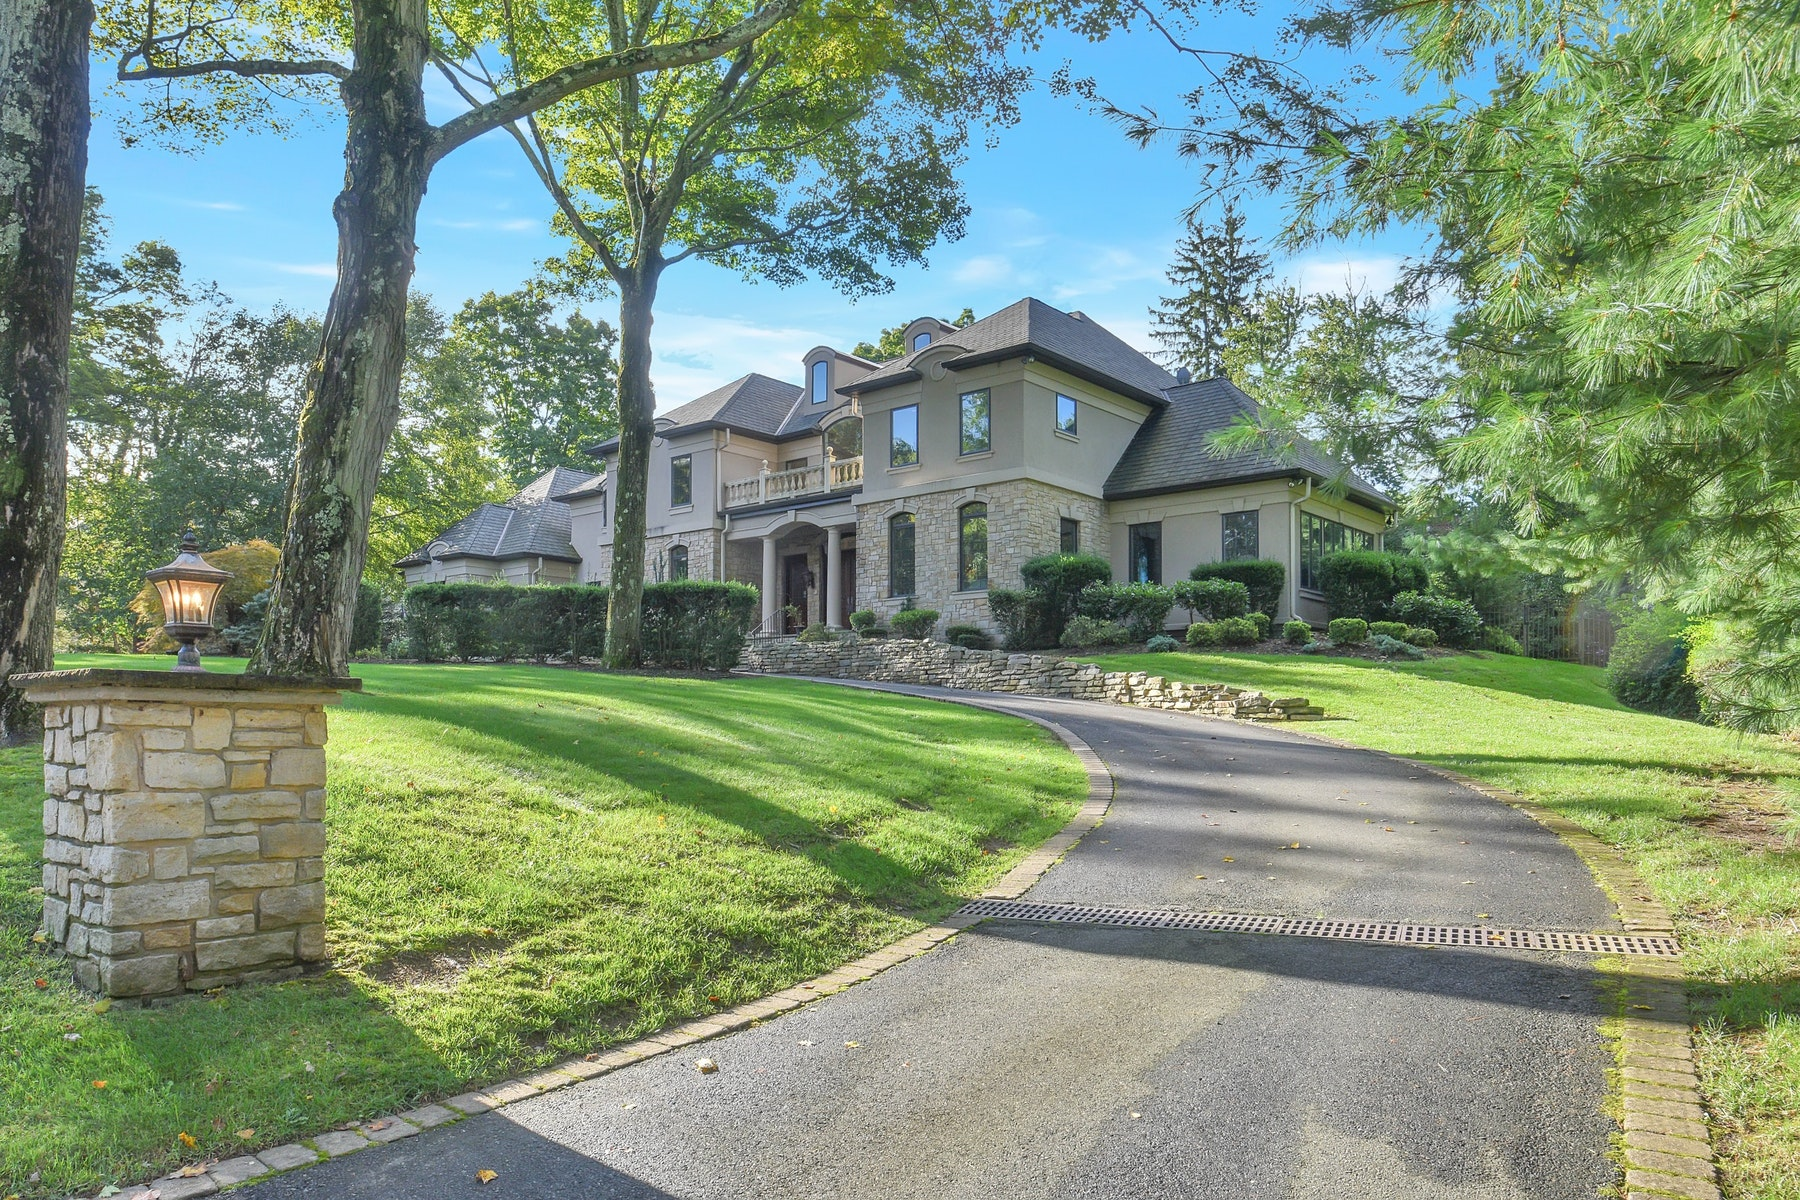 Single Family Homes for Sale at Breathtaking Custom Estate 38 Weiss Rd. Upper Saddle River, New Jersey 07458 United States